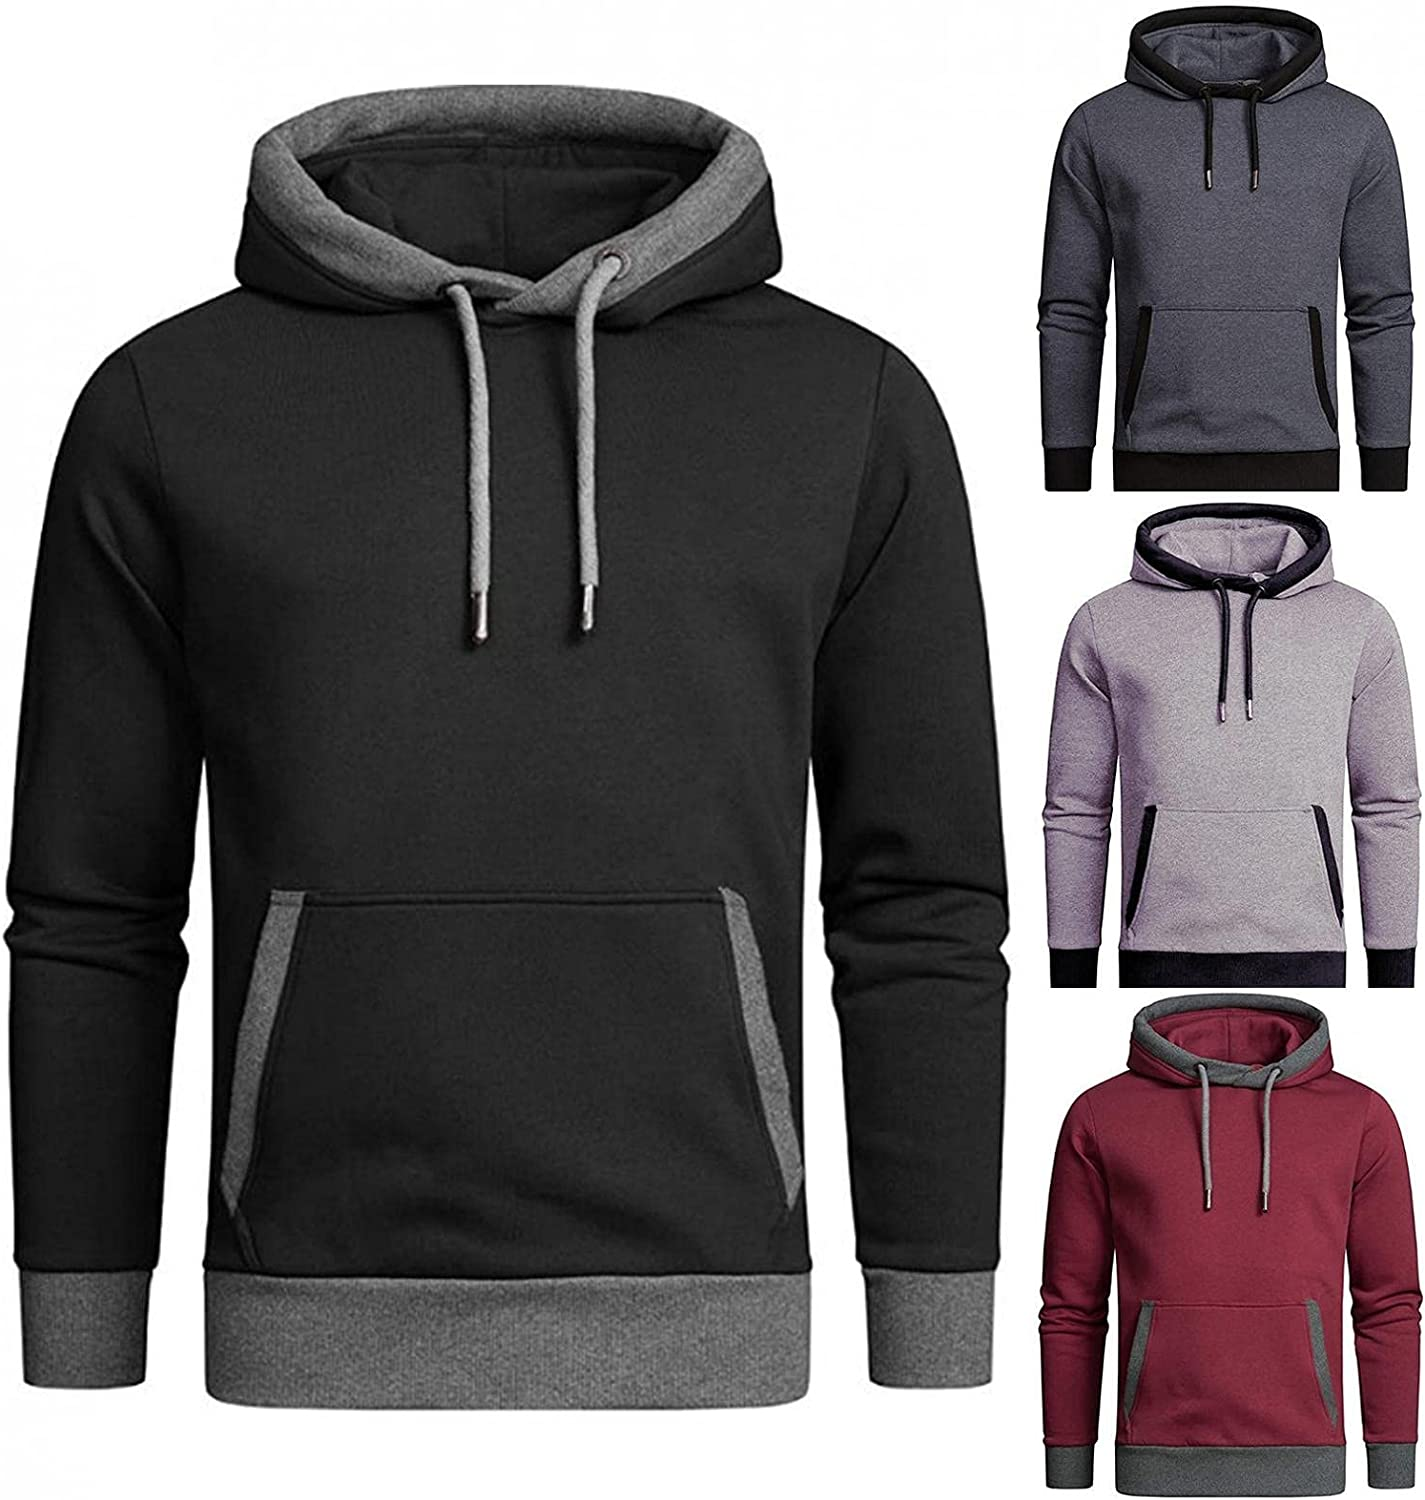 Men's Hoodie Solid Color Athletic Sweatshirt Casual Long Sleeve Drawstring Pullover Tops Gym Hooded Outwear with Pockets